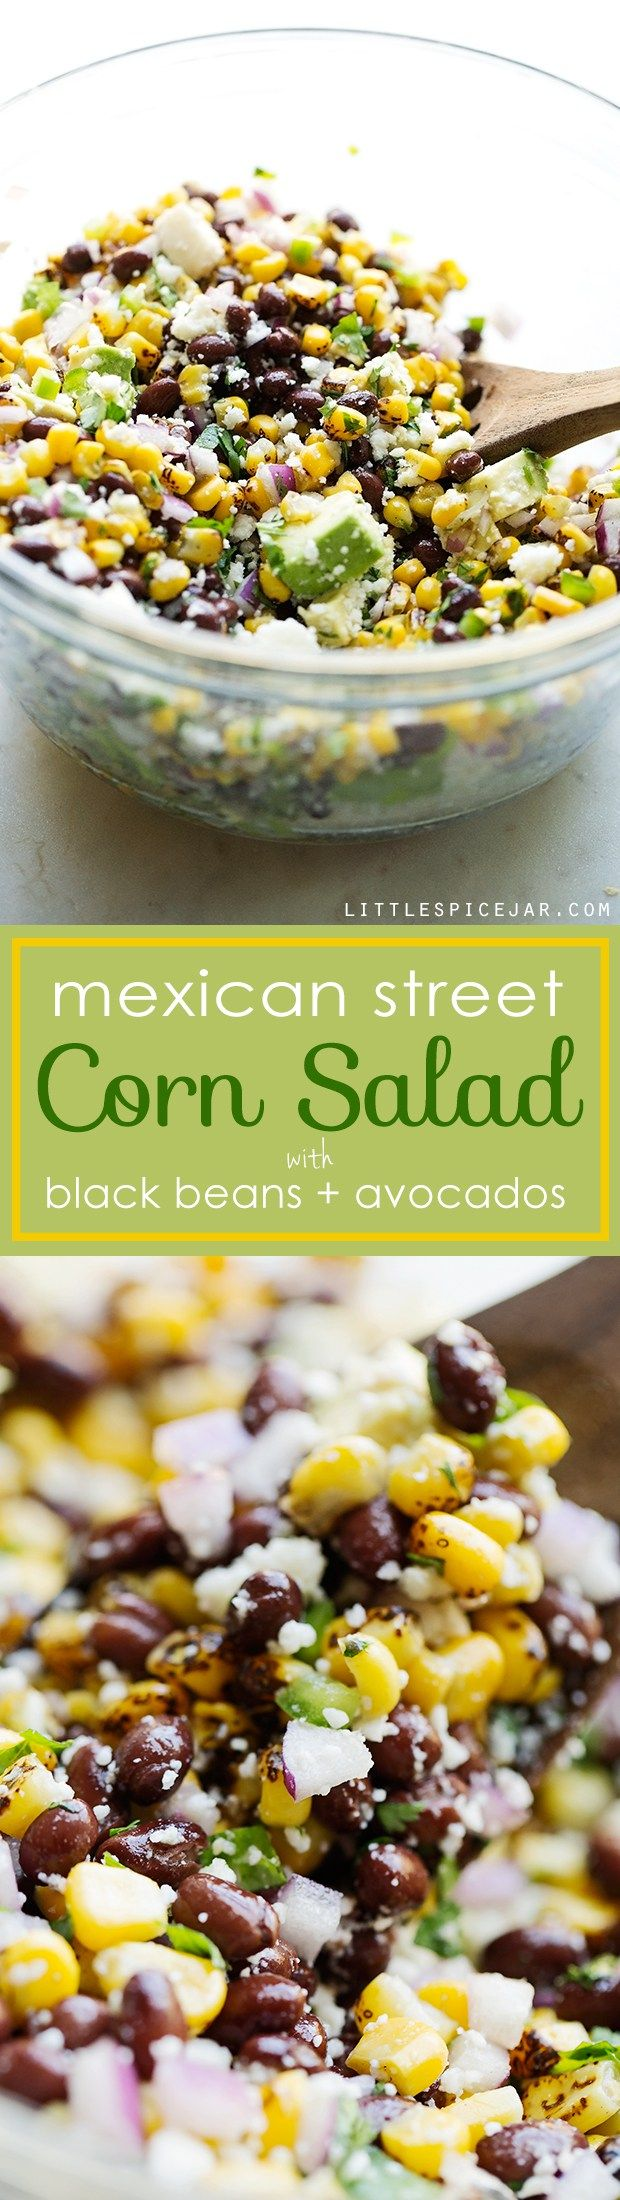 Mexican Street Corn Salad - The perfect summer corn salad with lots of fresh ingredients tossed in a light homemade dressing